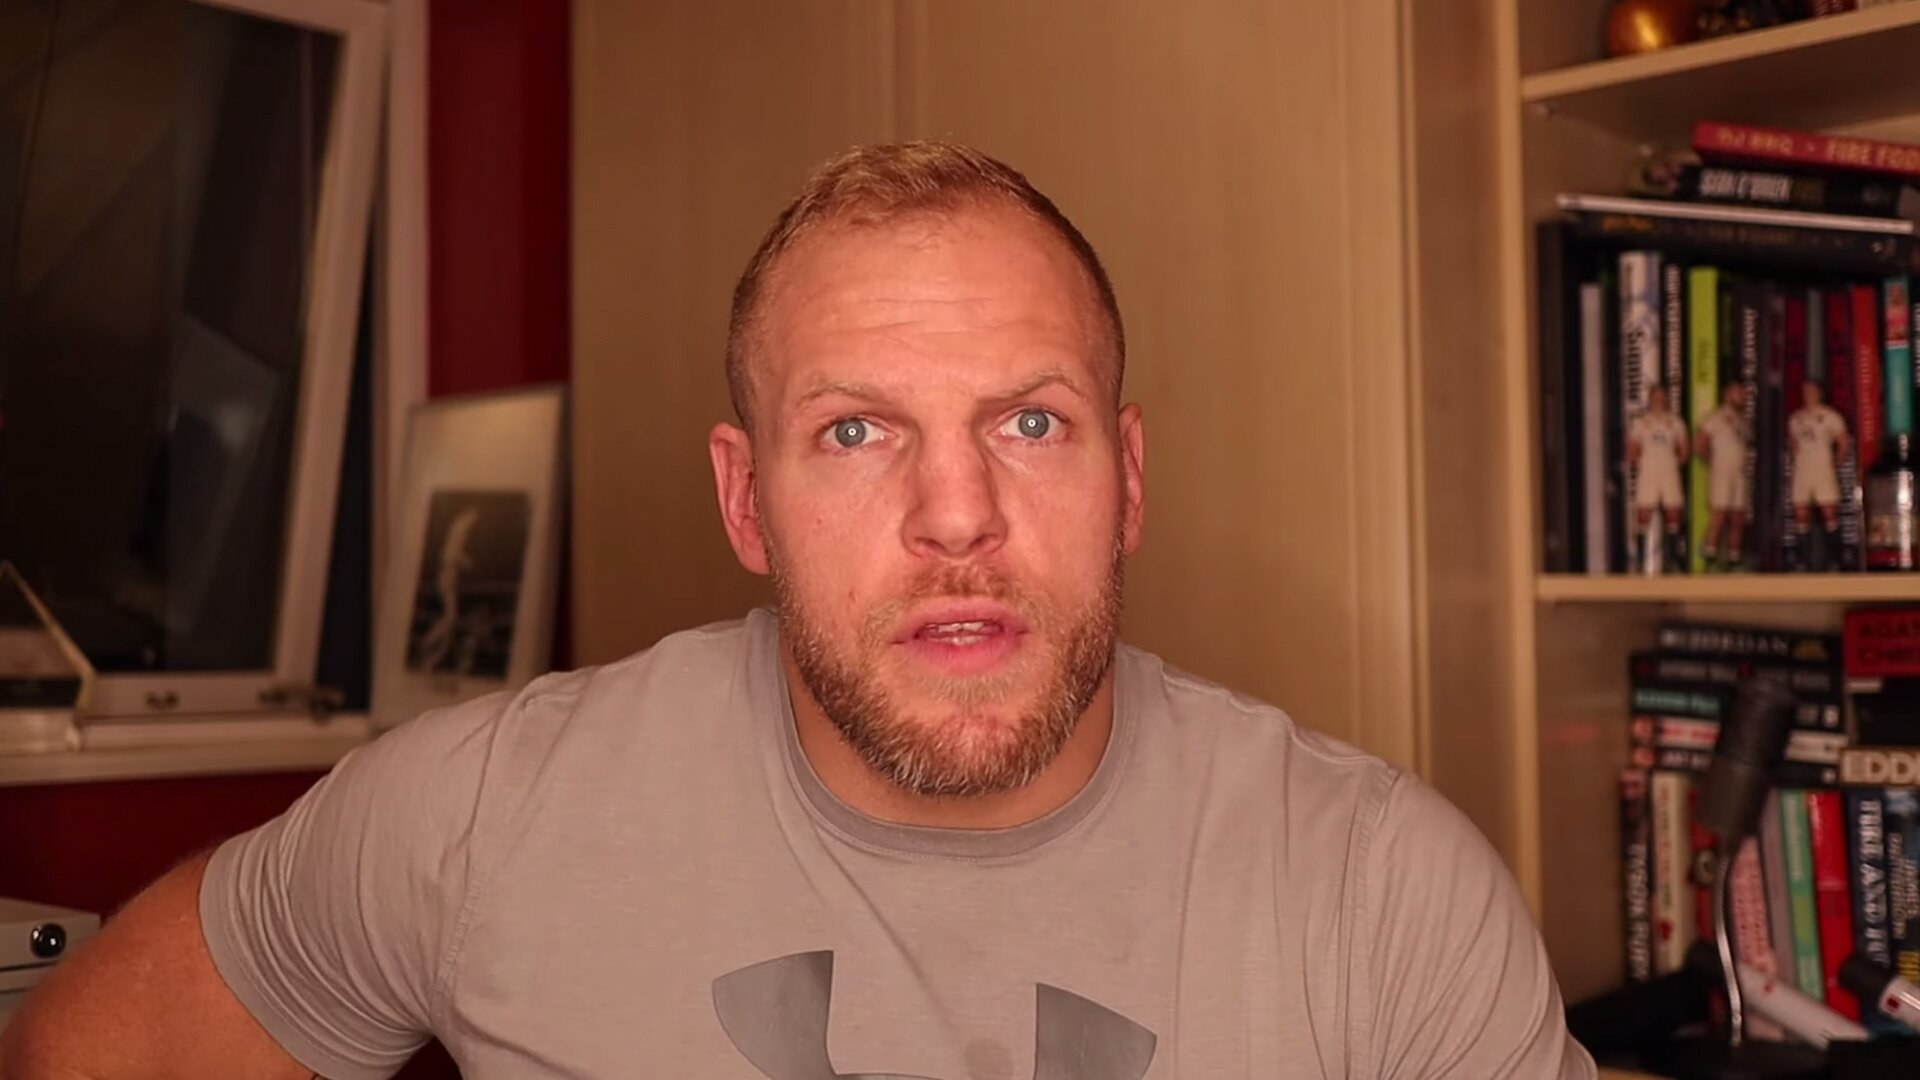 Former rugby star James Haskell has just published a full blown rant online